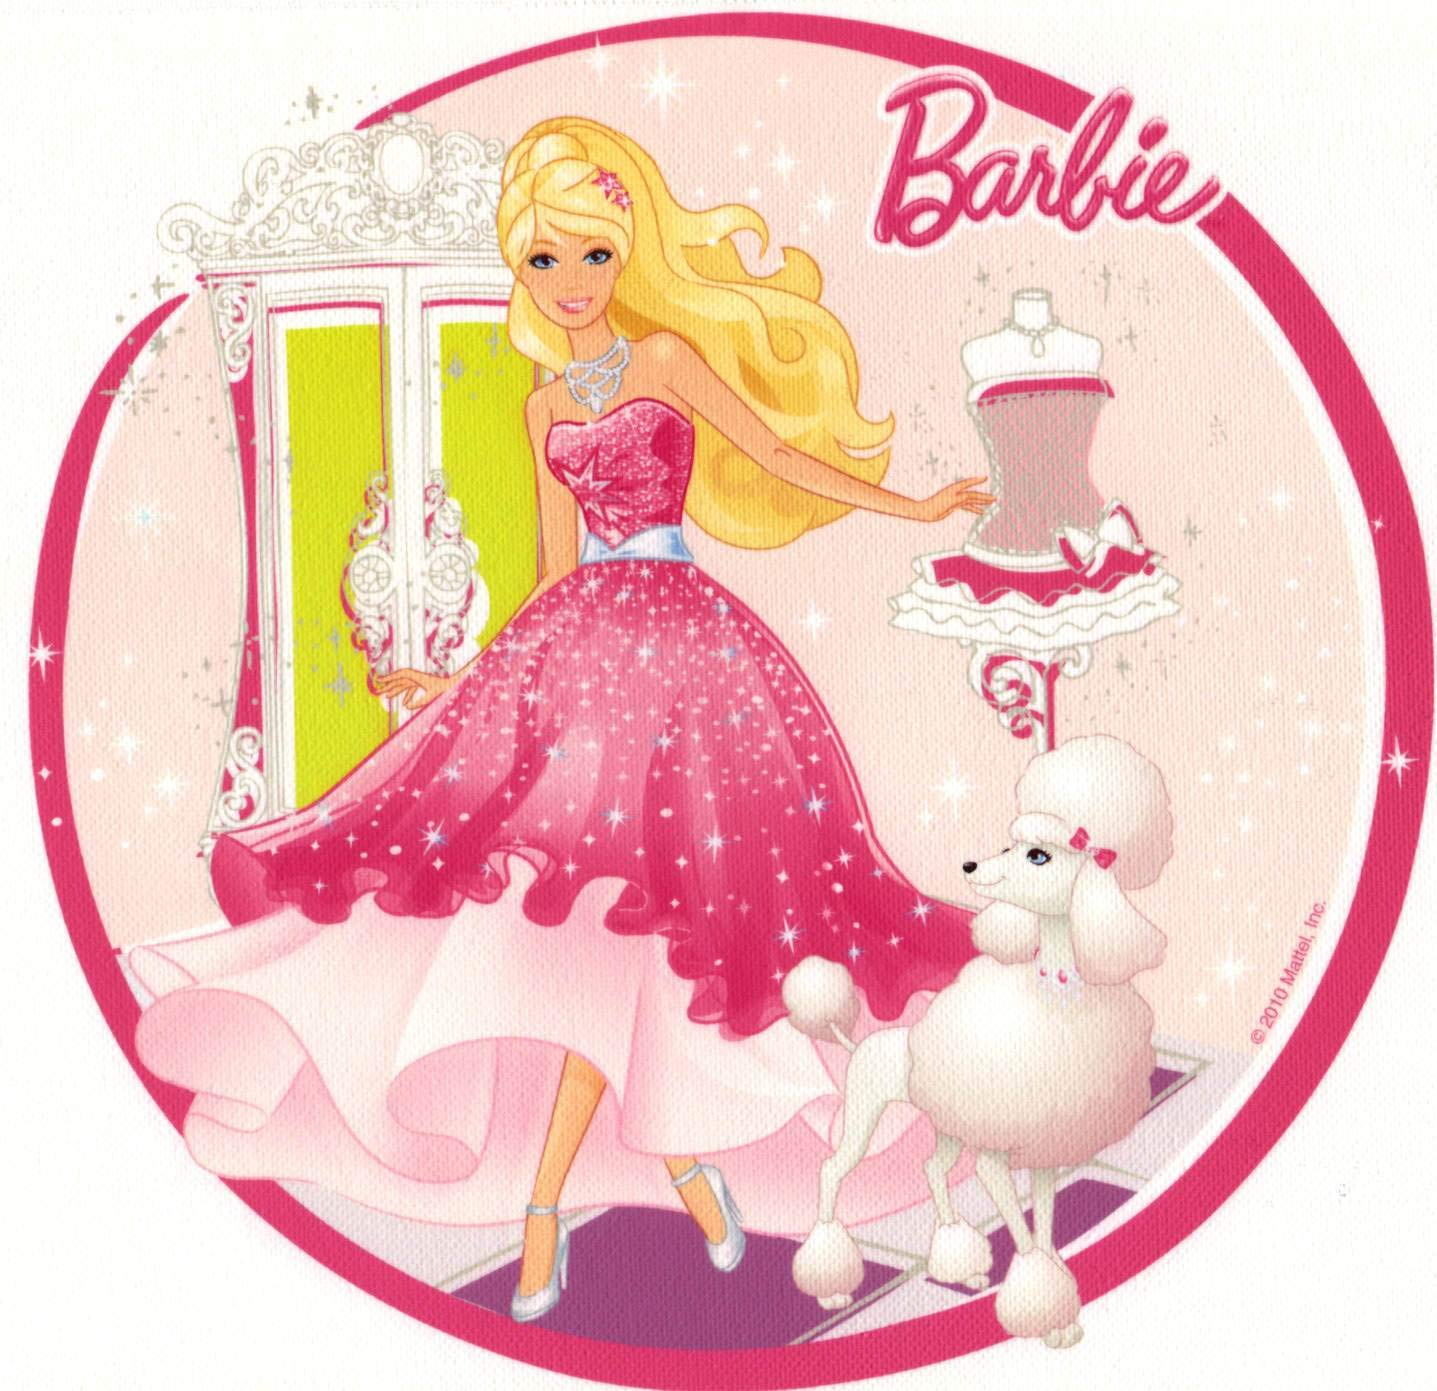 Barbie Doll American Edible Birthday Cake Image Topper Frosting Icing 1//4 Sheet